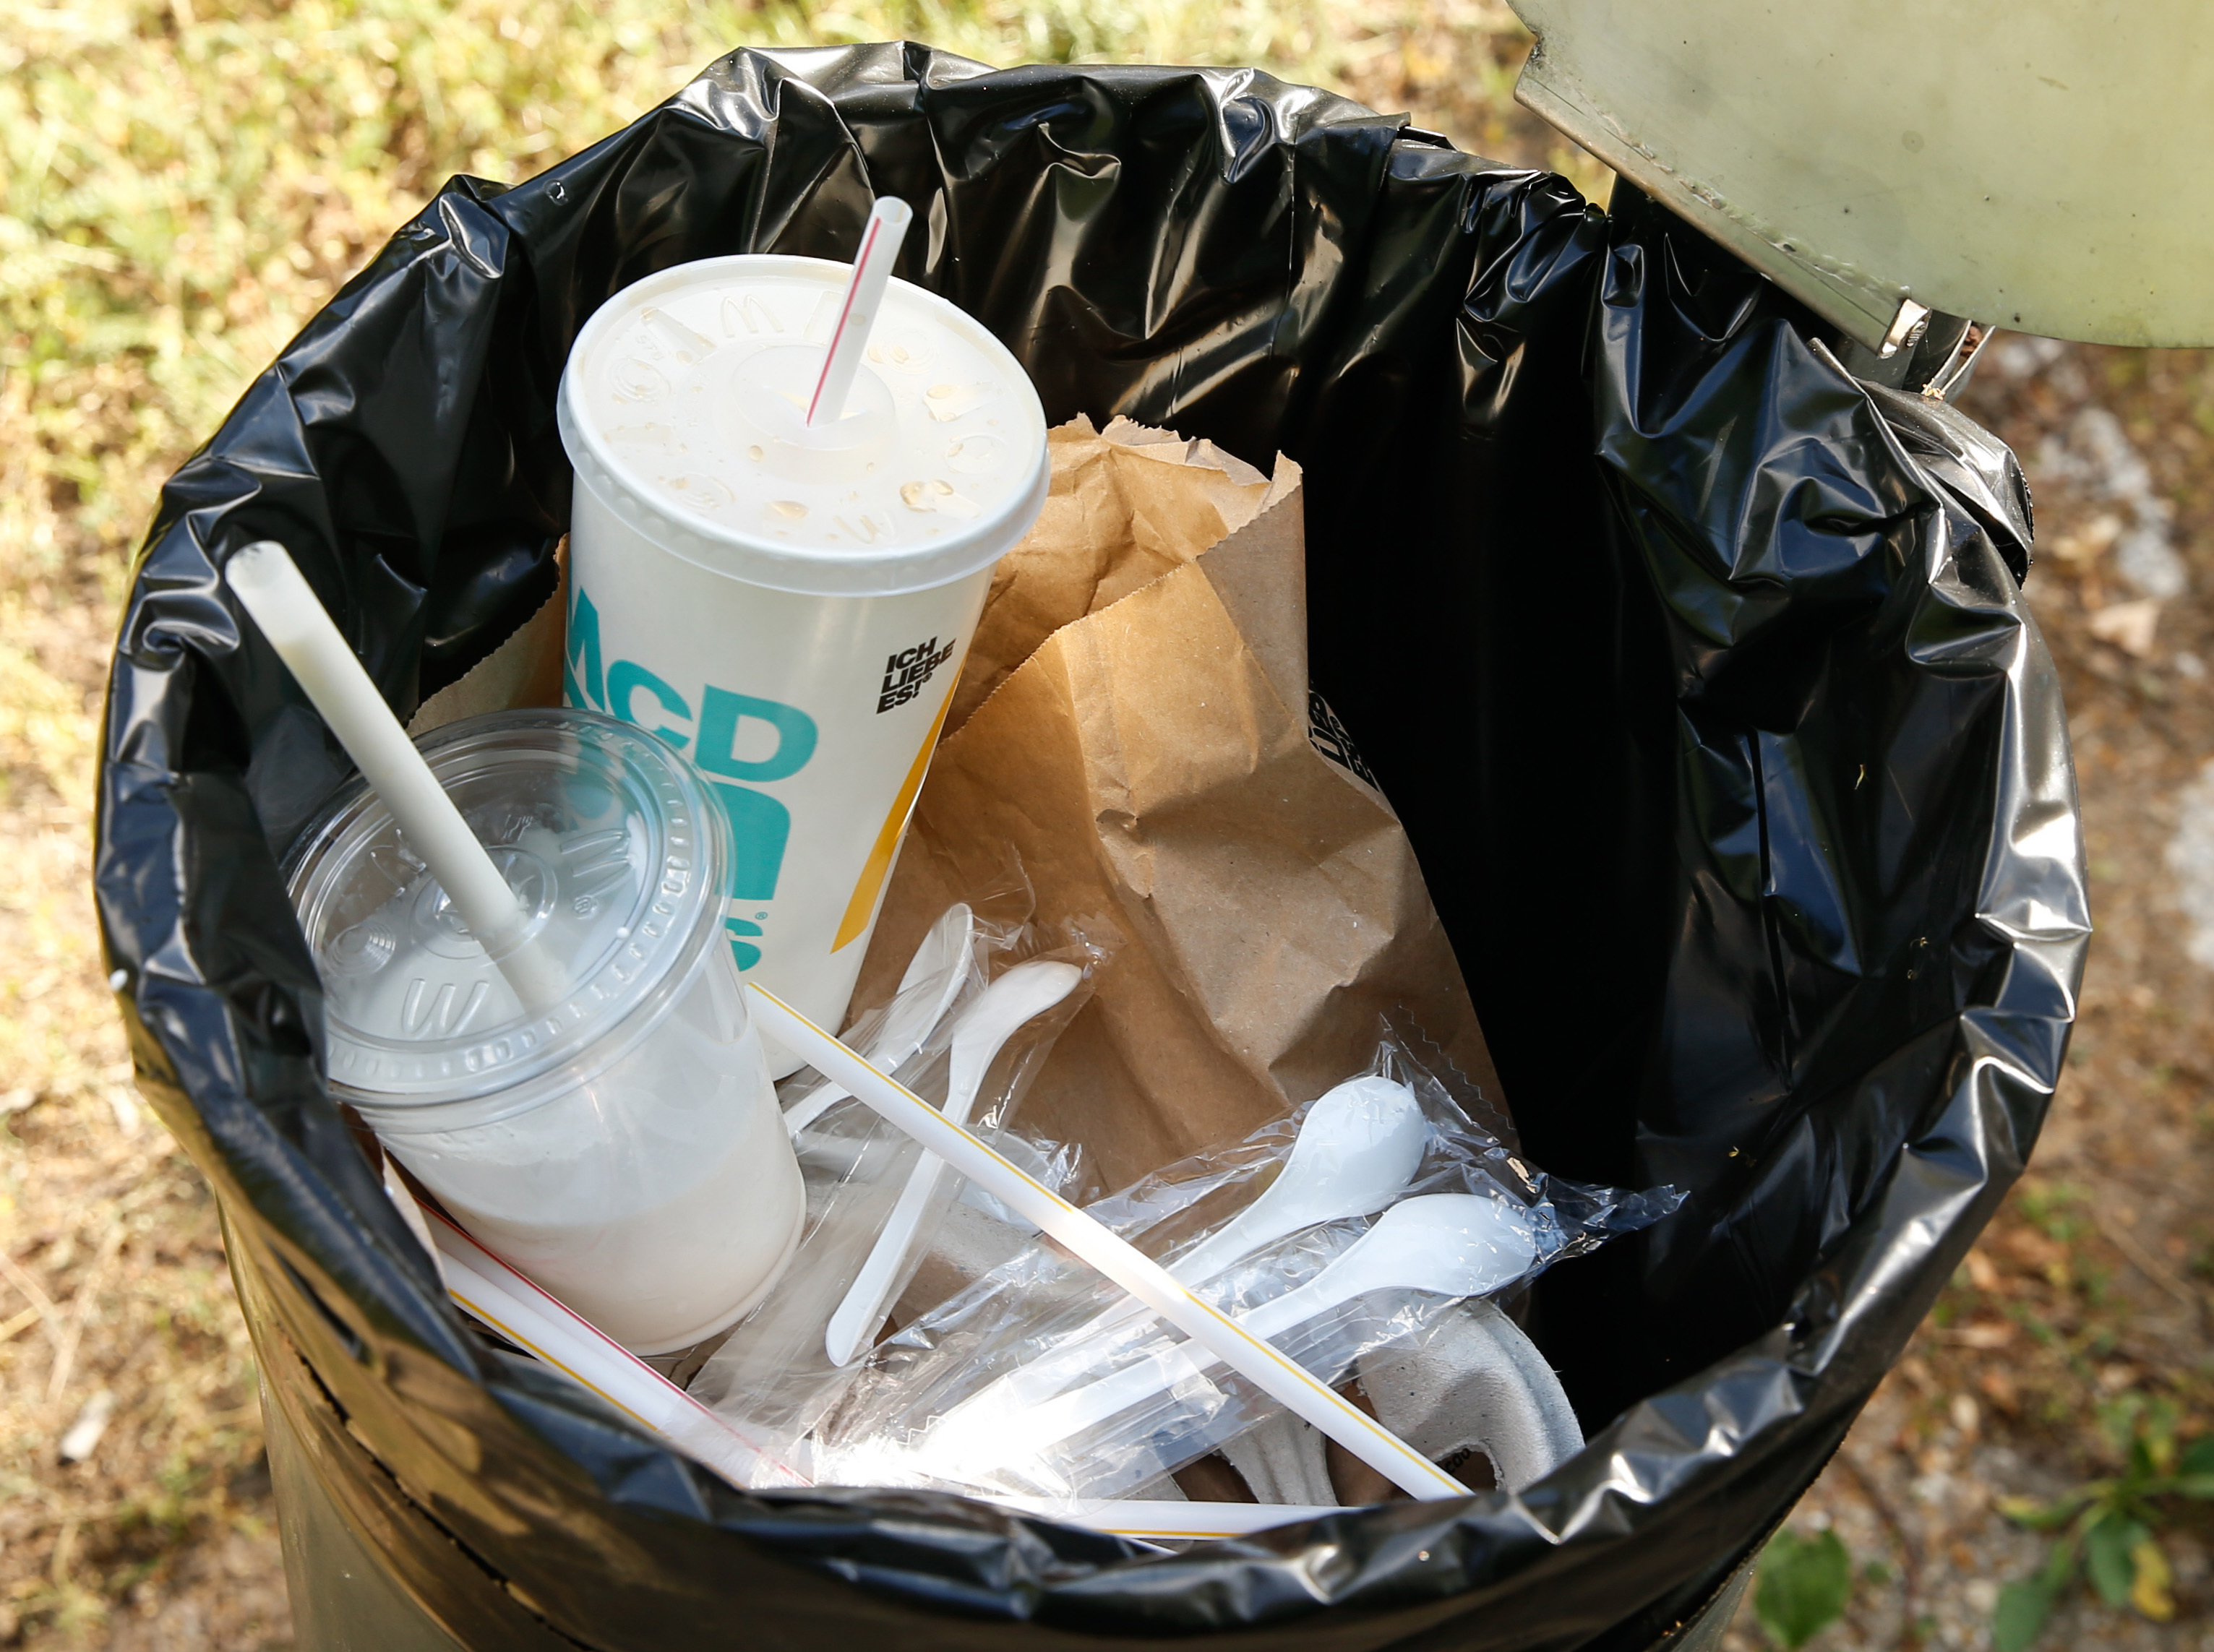 McDonald's hated new 'eco-friendly' paper straws can not be recycled